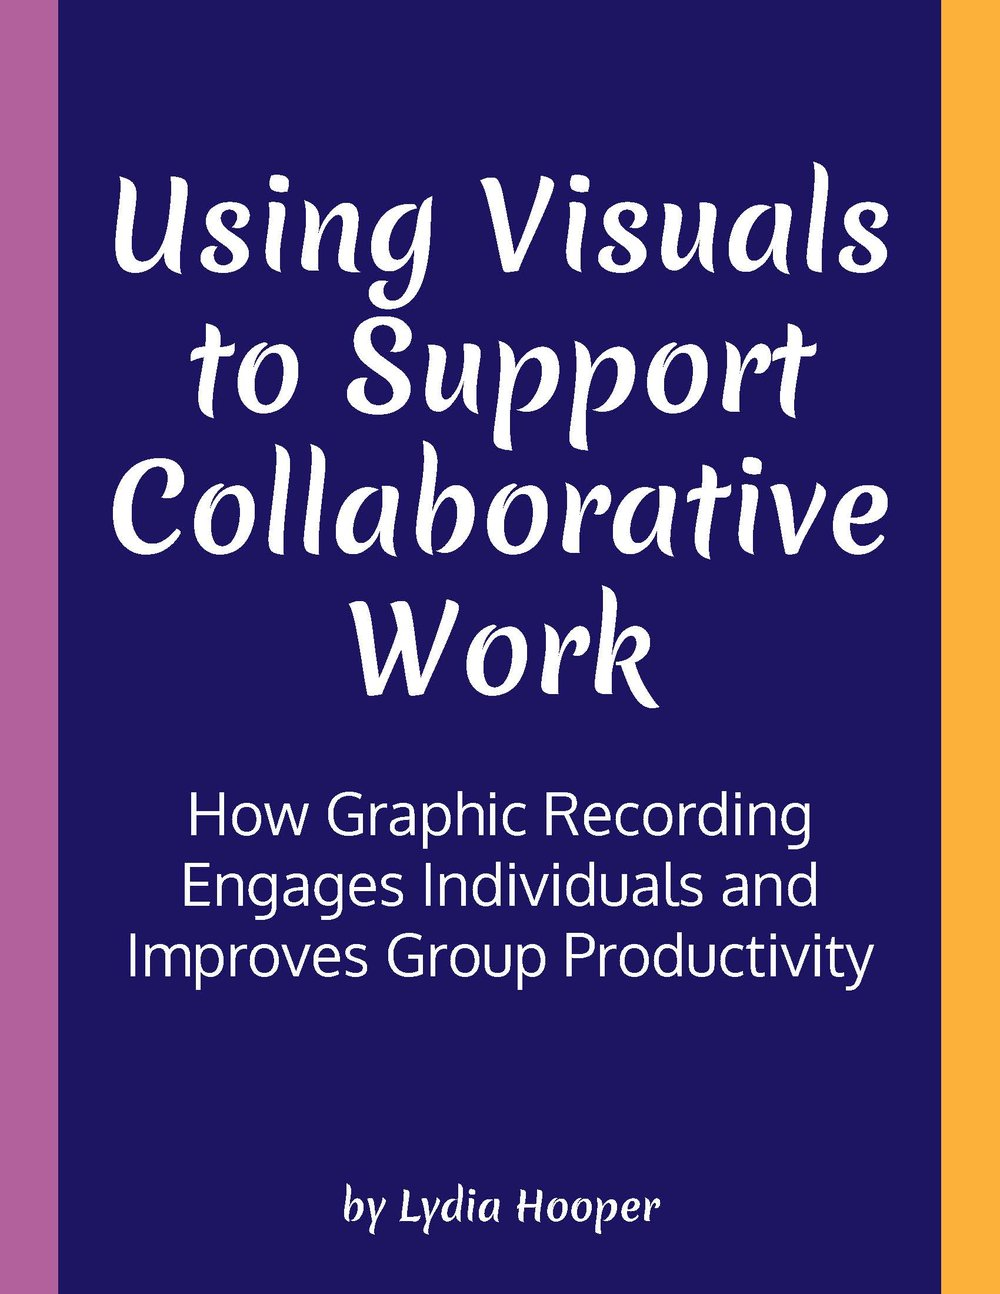 Cover of UsingVisualsToSupportCollaboration.jpg